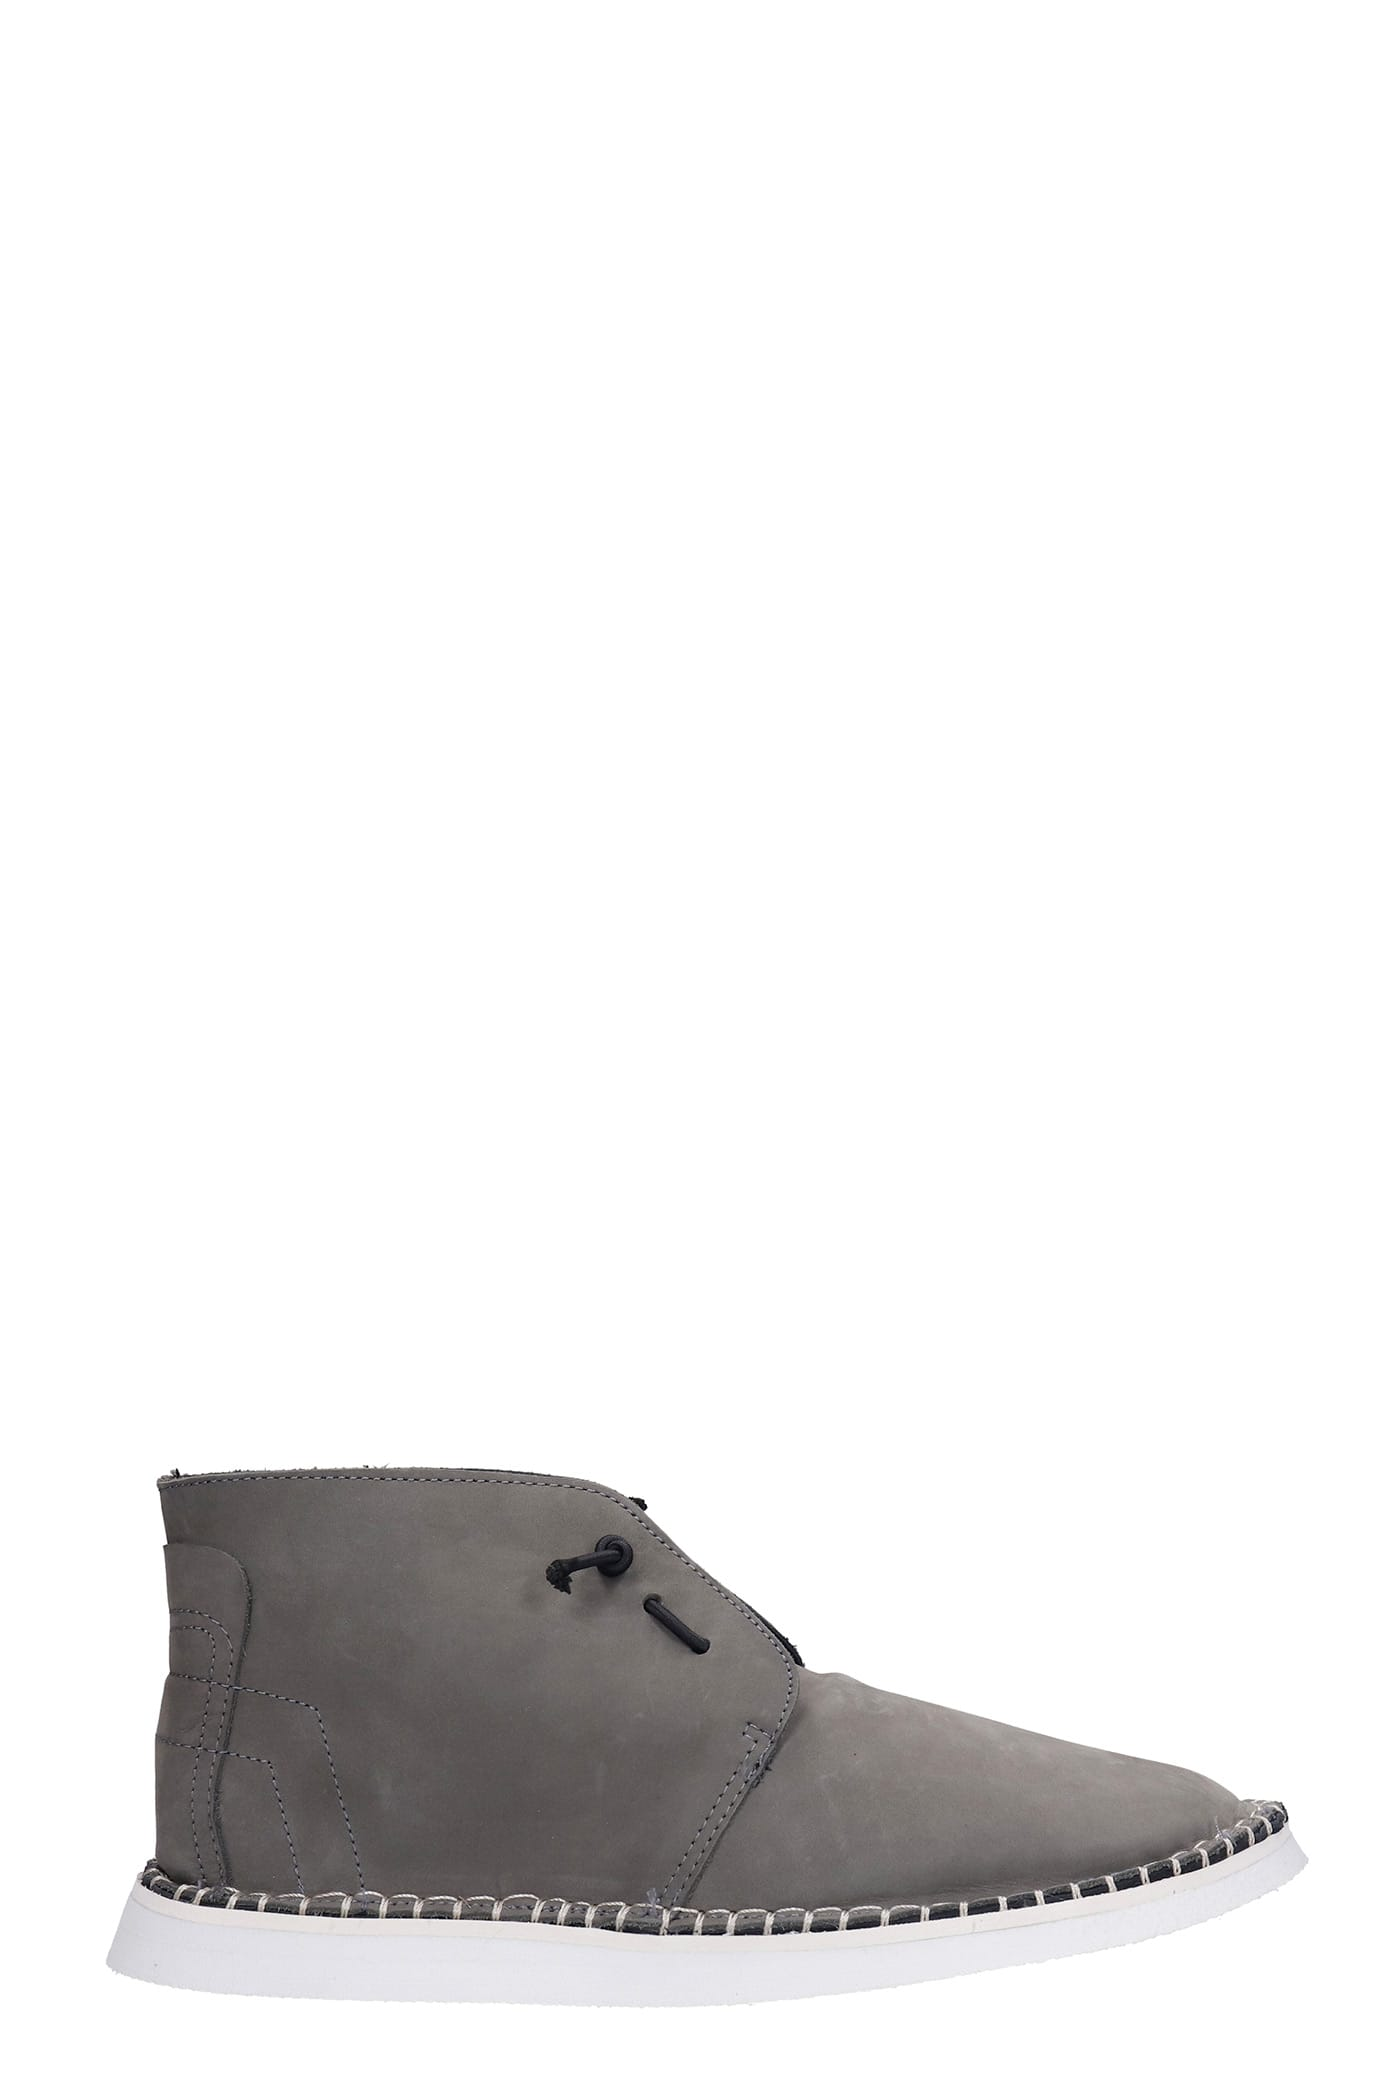 Flavor Lace Up Shoes In Grey Nubuck